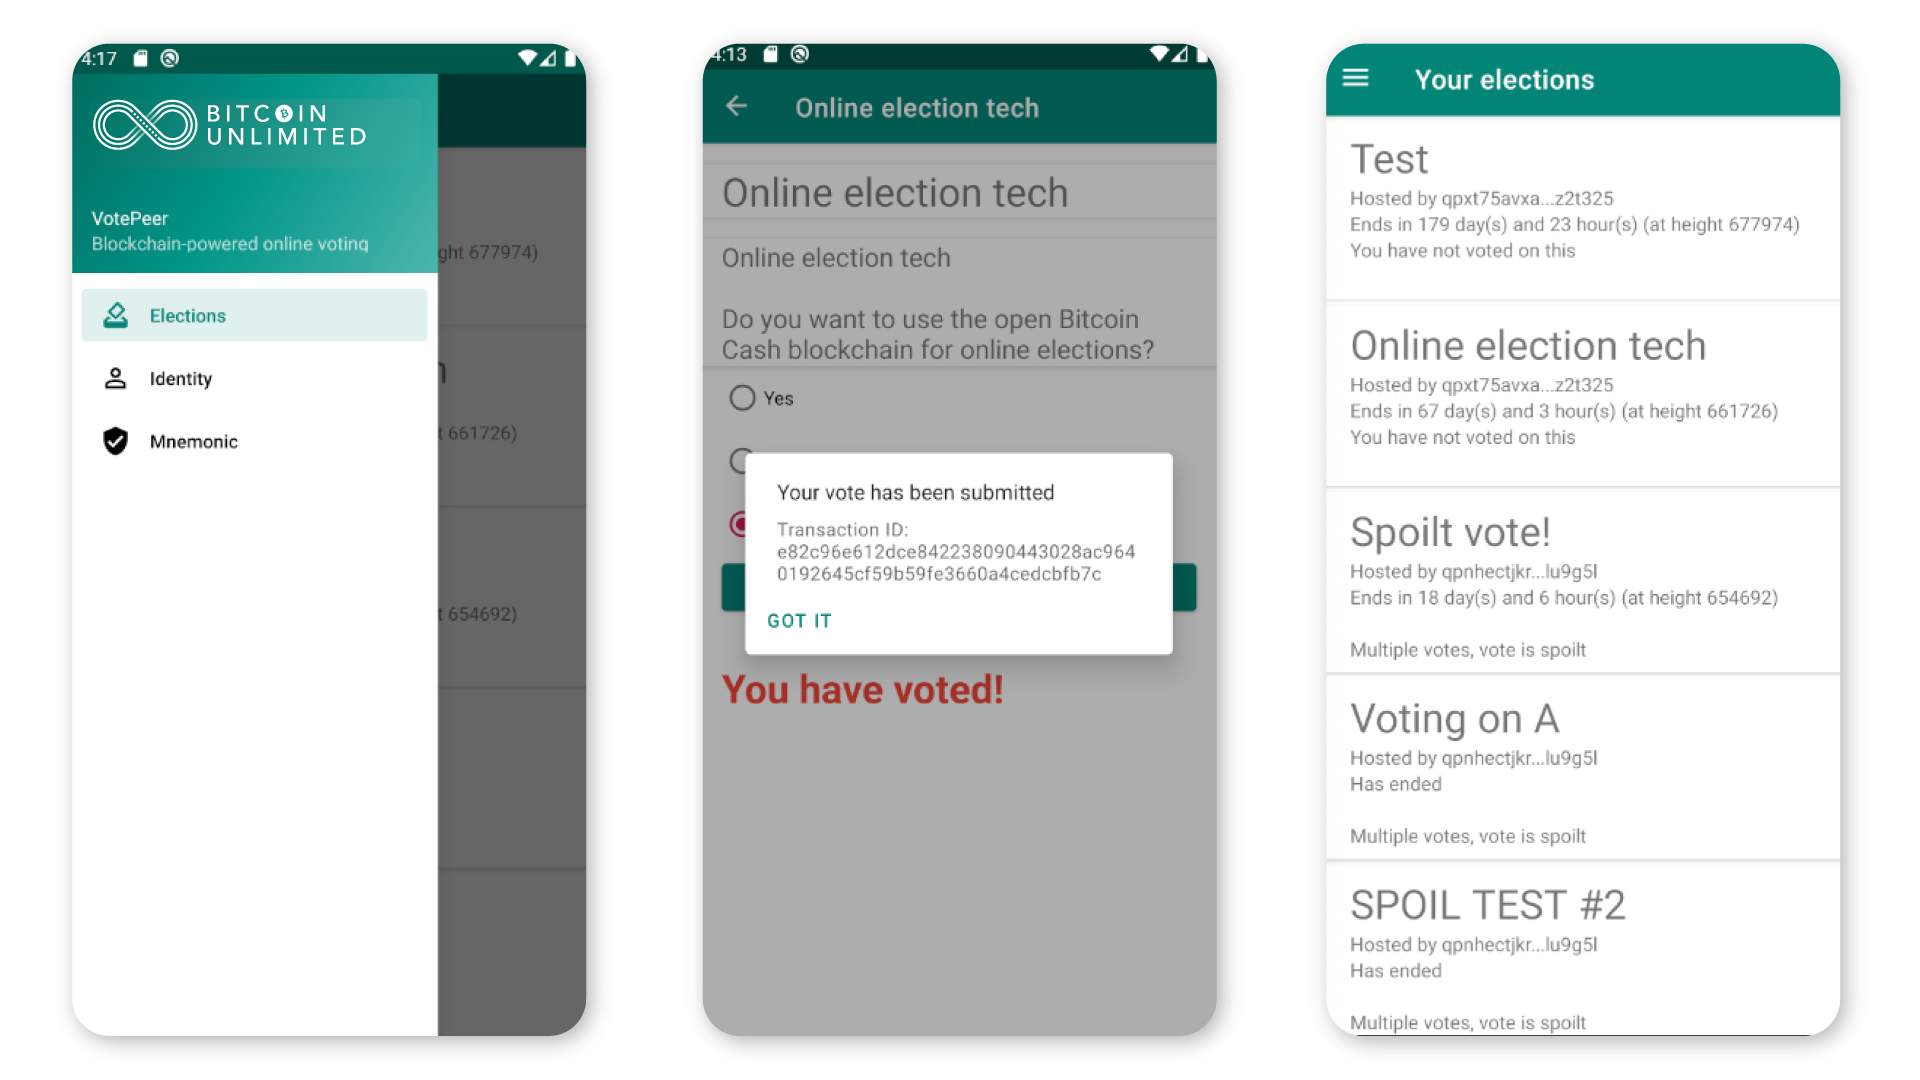 Bitcoin Unlimited Launches Two-Option Voting App Powered by Bitcoin Cash